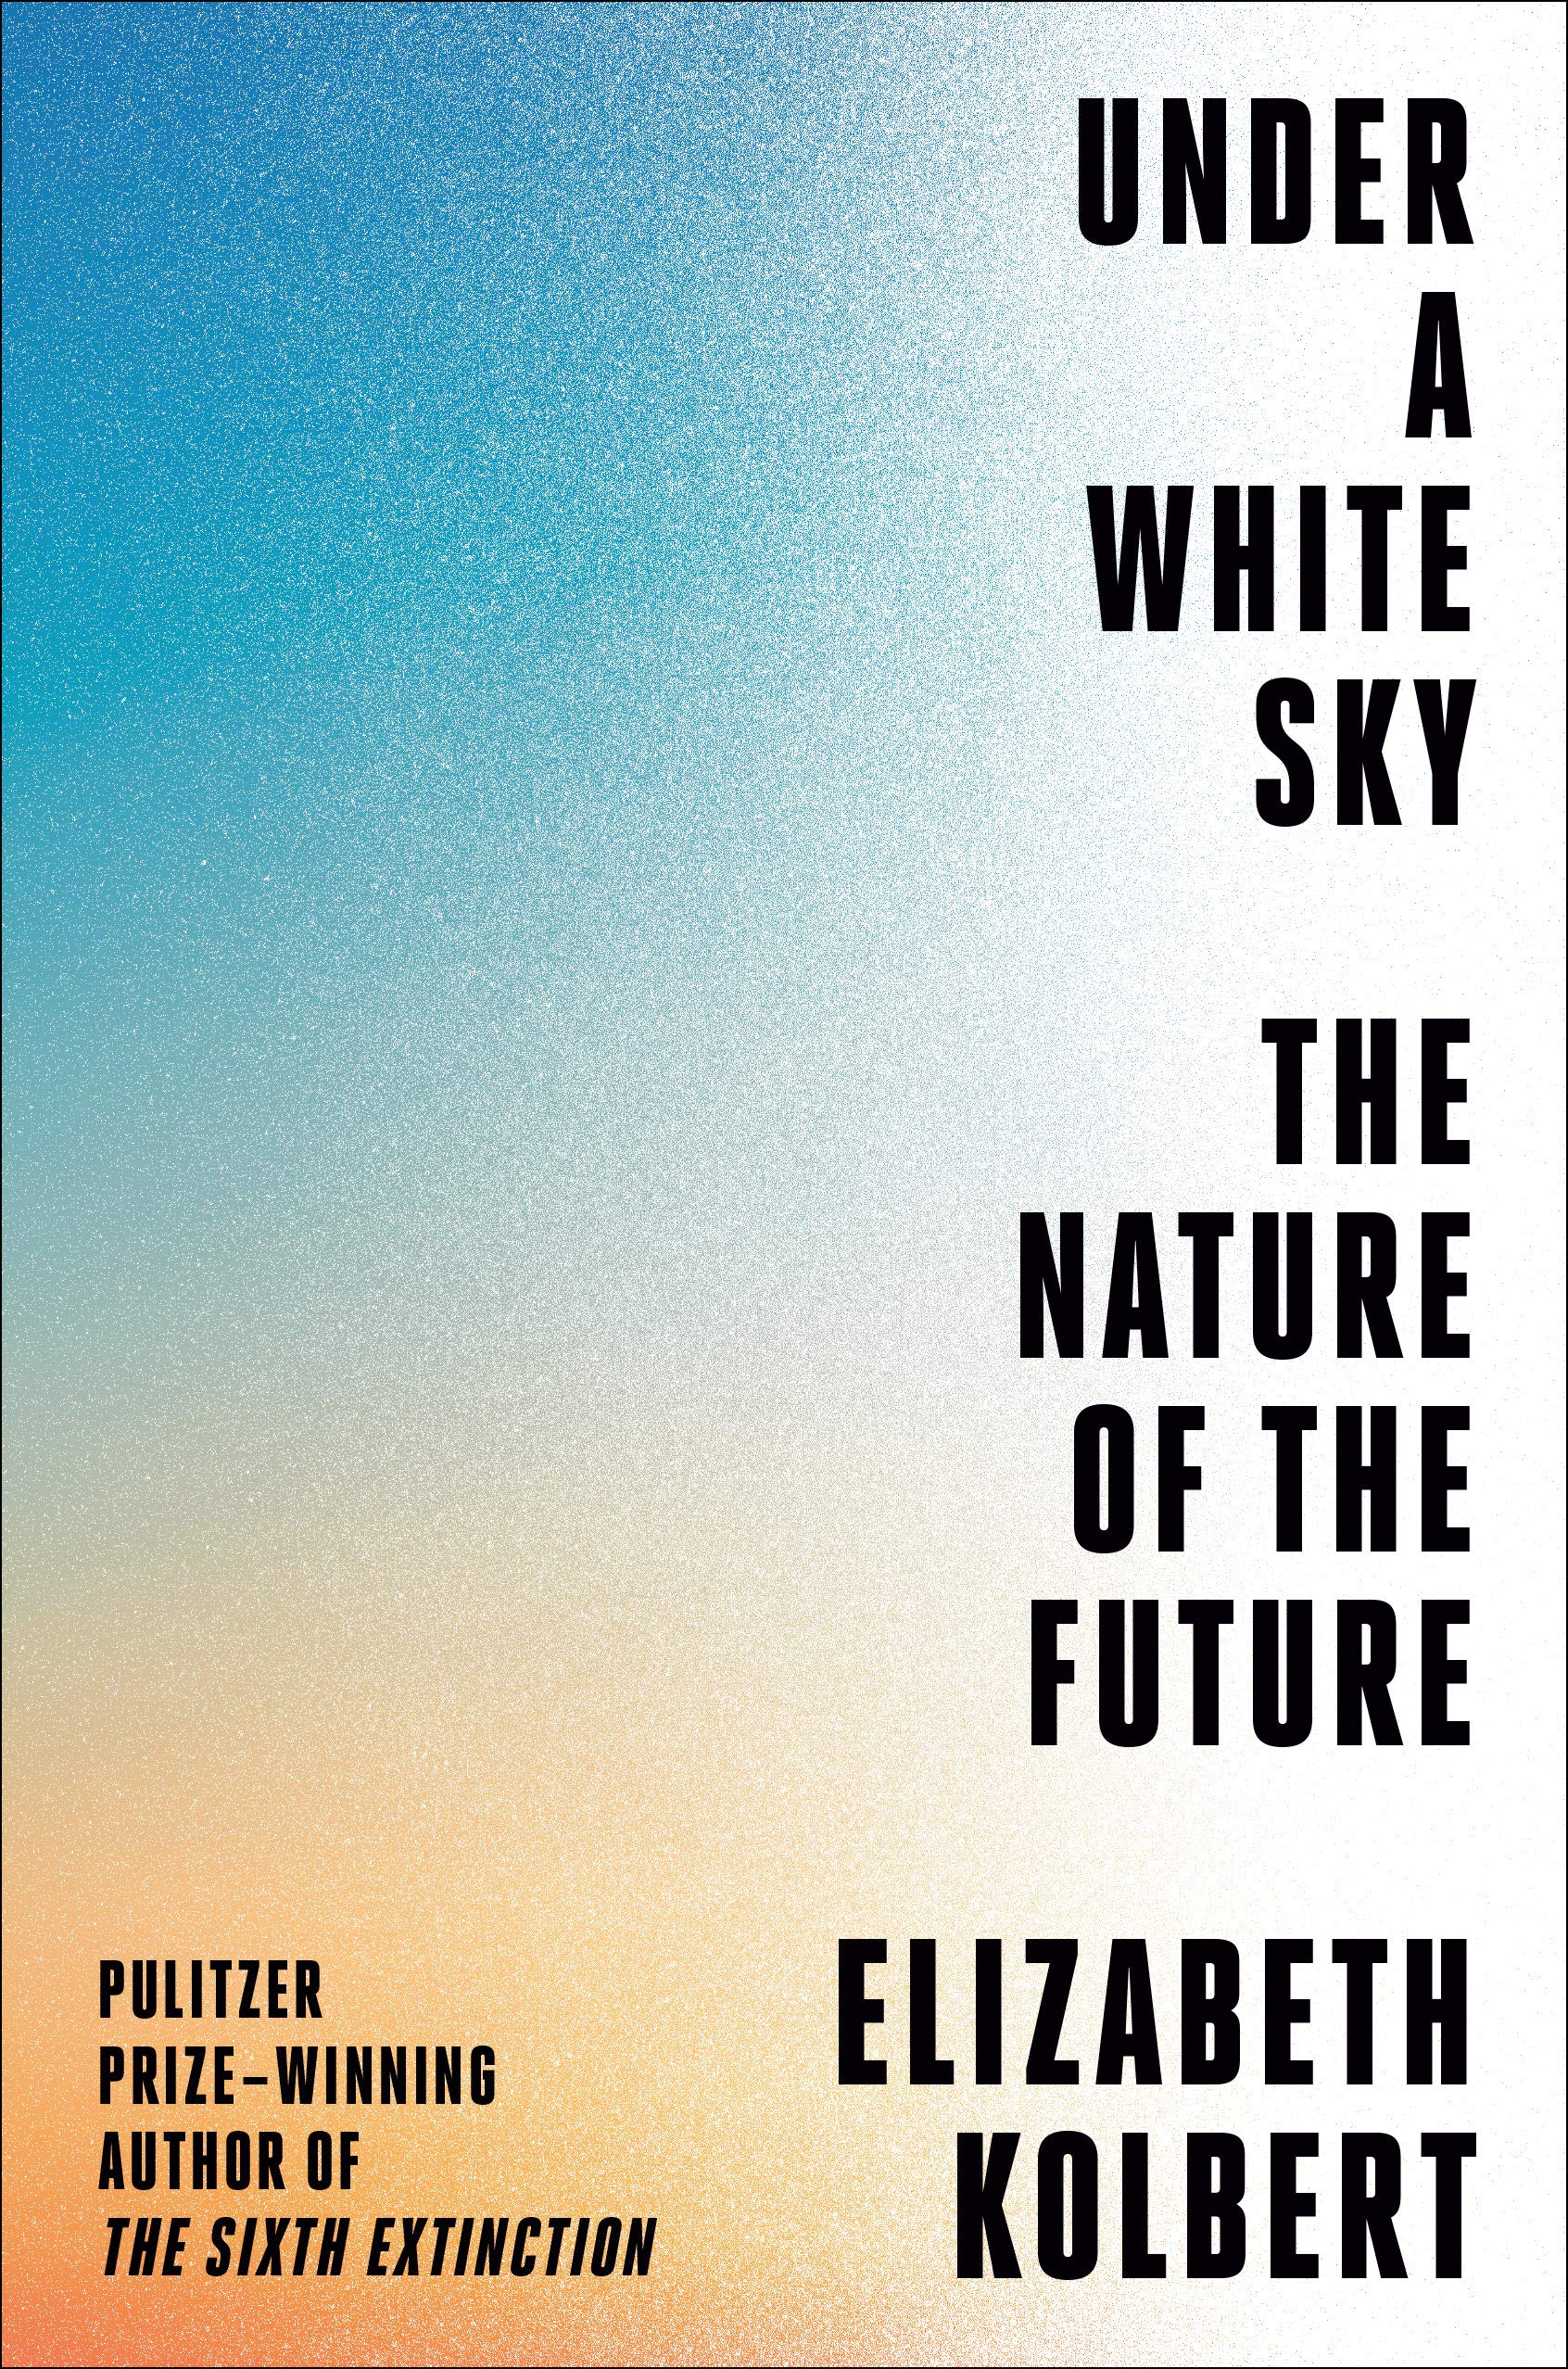 Under a White Sky- The Nature of the Future by Elizabeth Kolbert